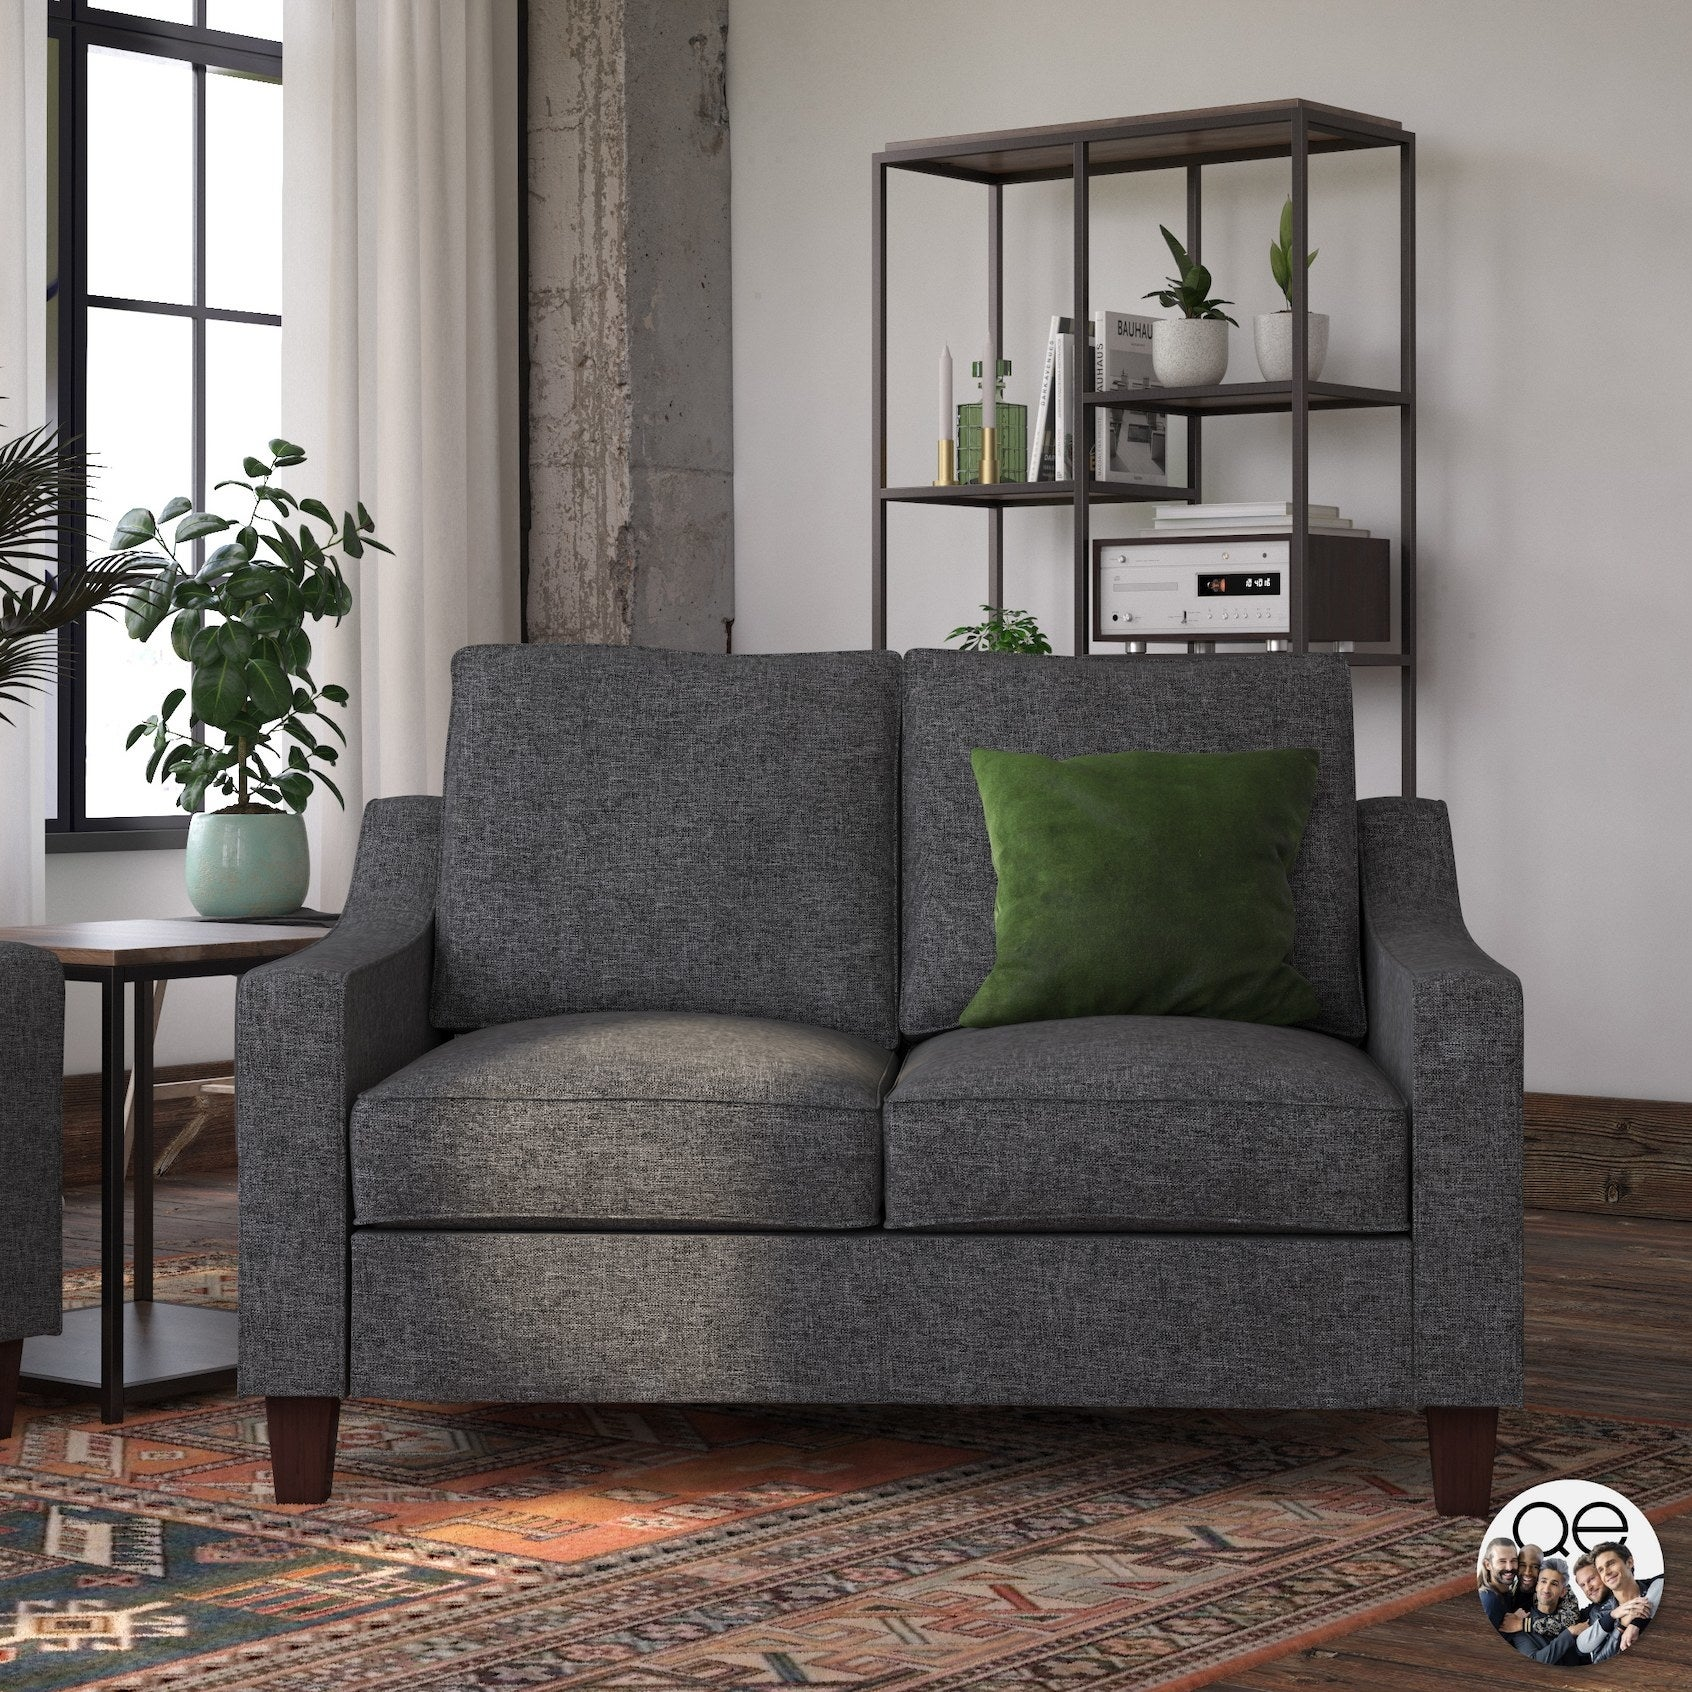 The gray two-seater couch with sleigh arms and wooden legs